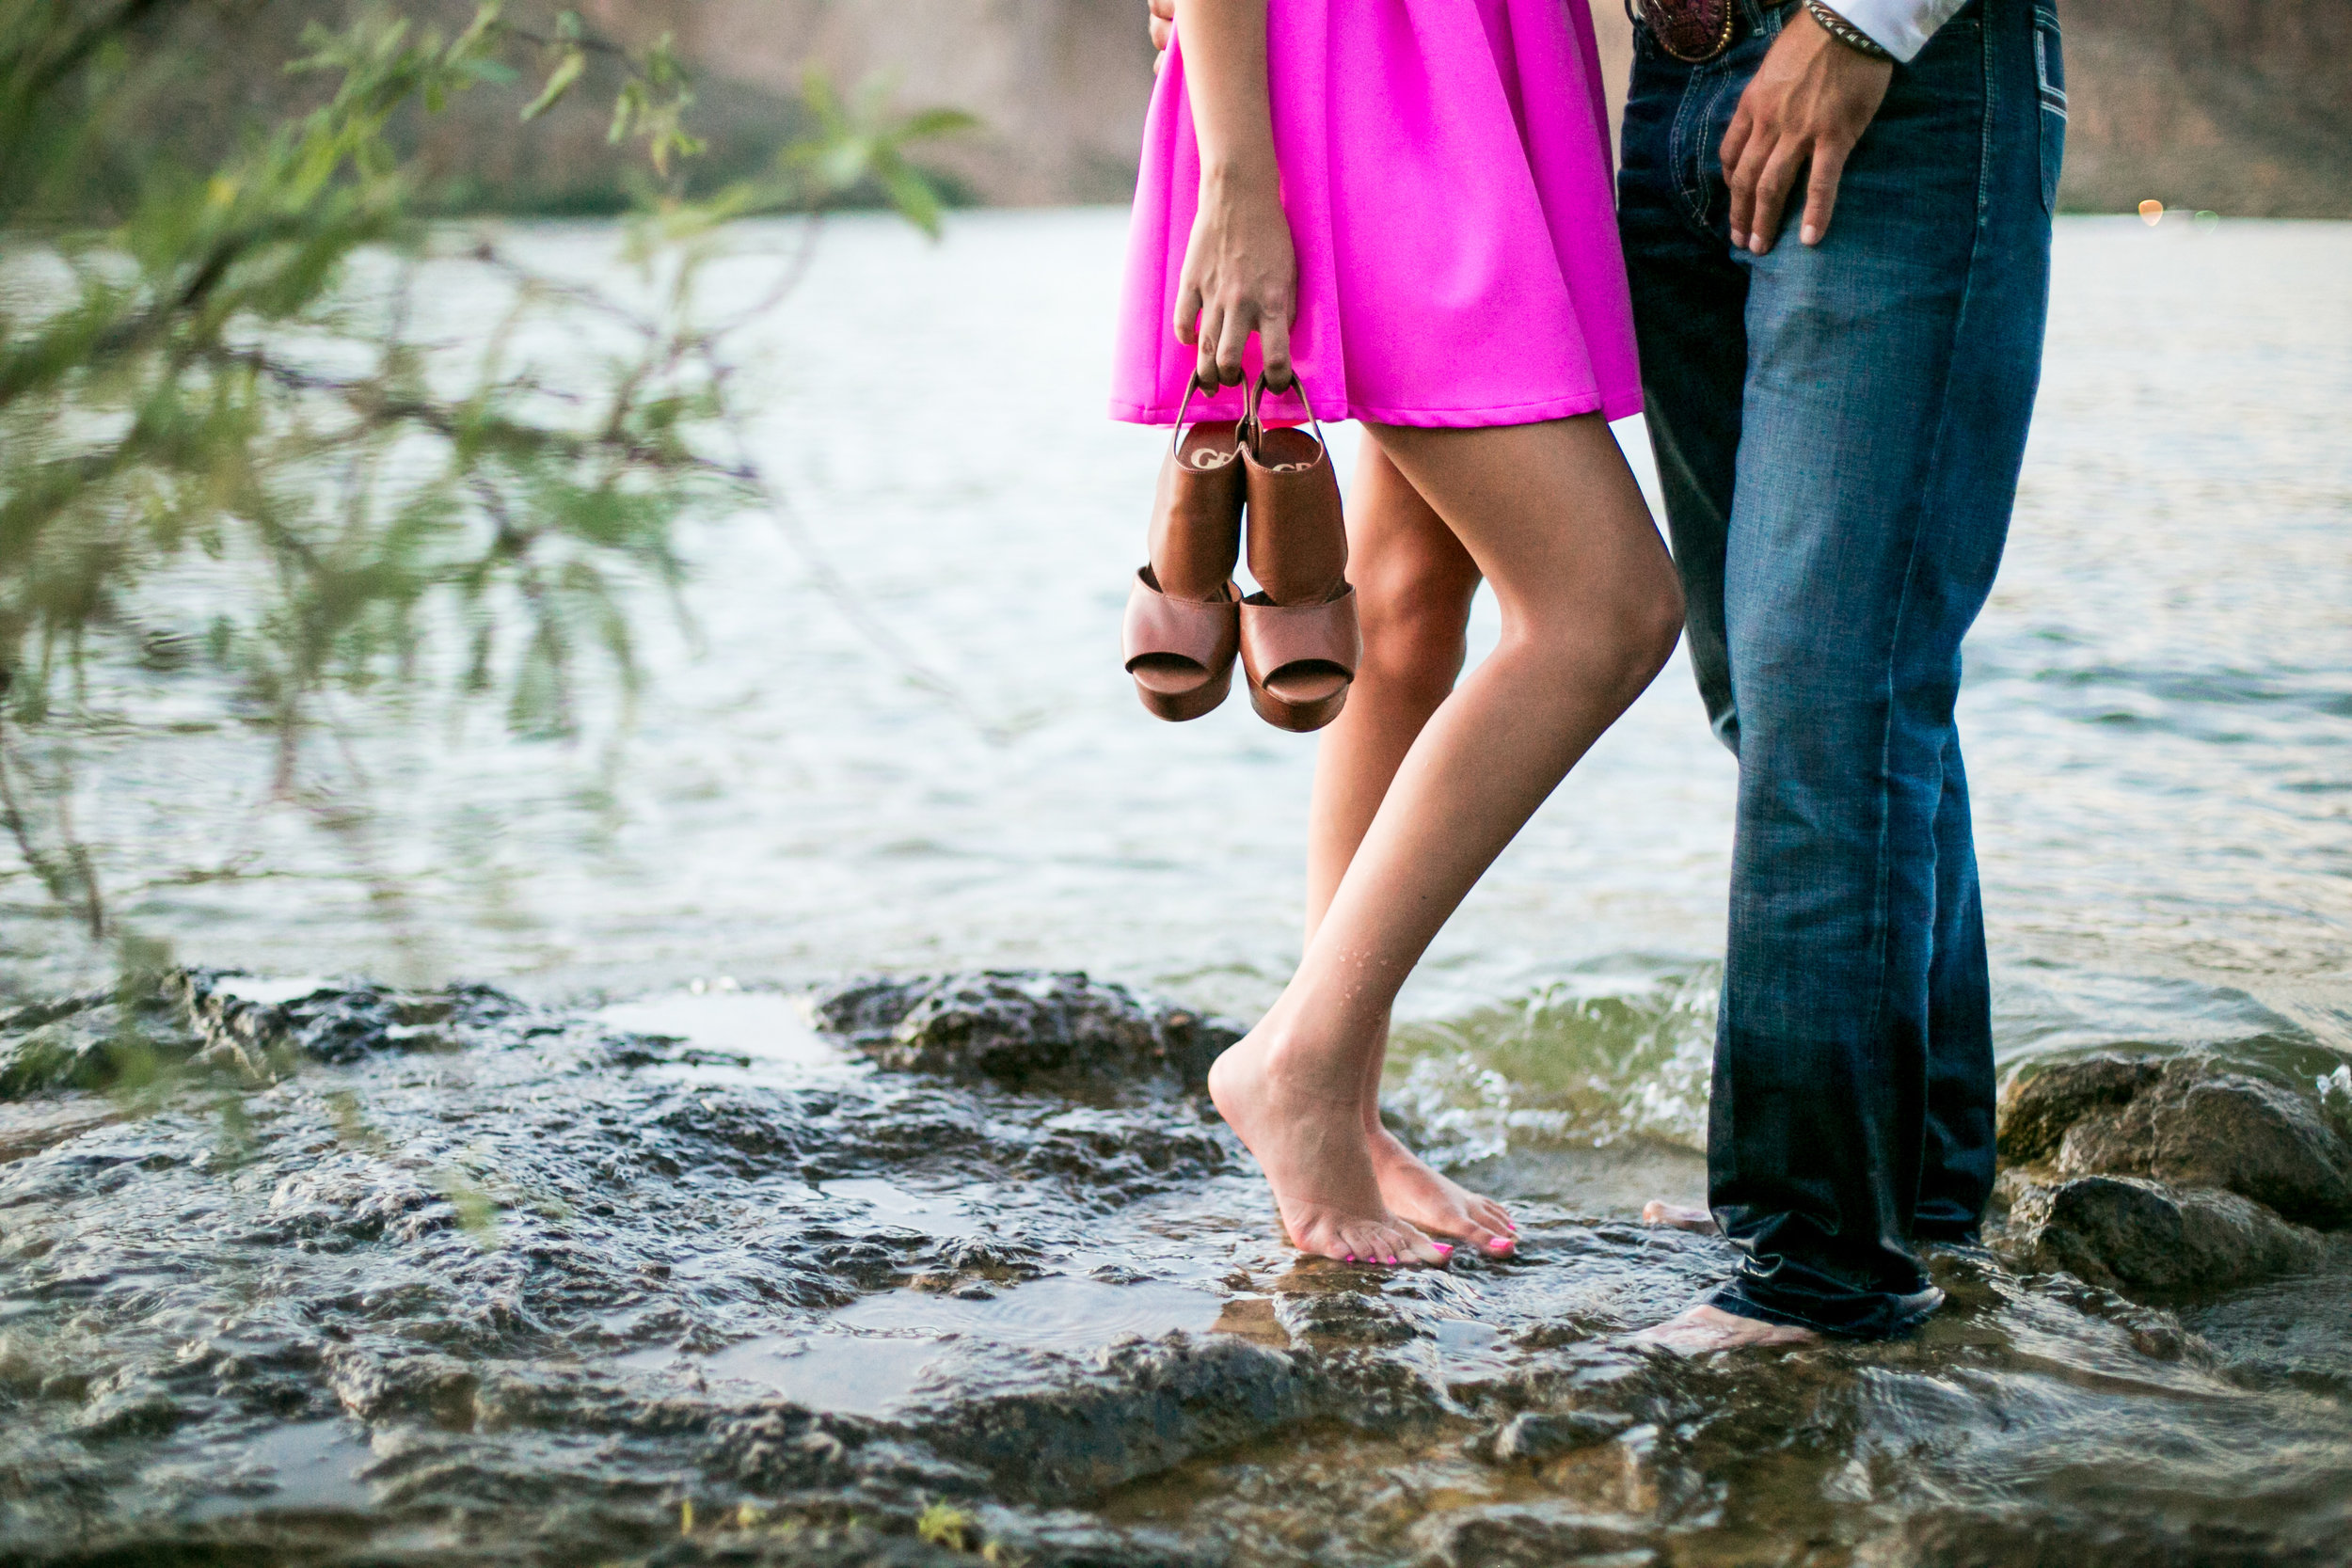 15CountryWesternEngagementPhotography.jpg